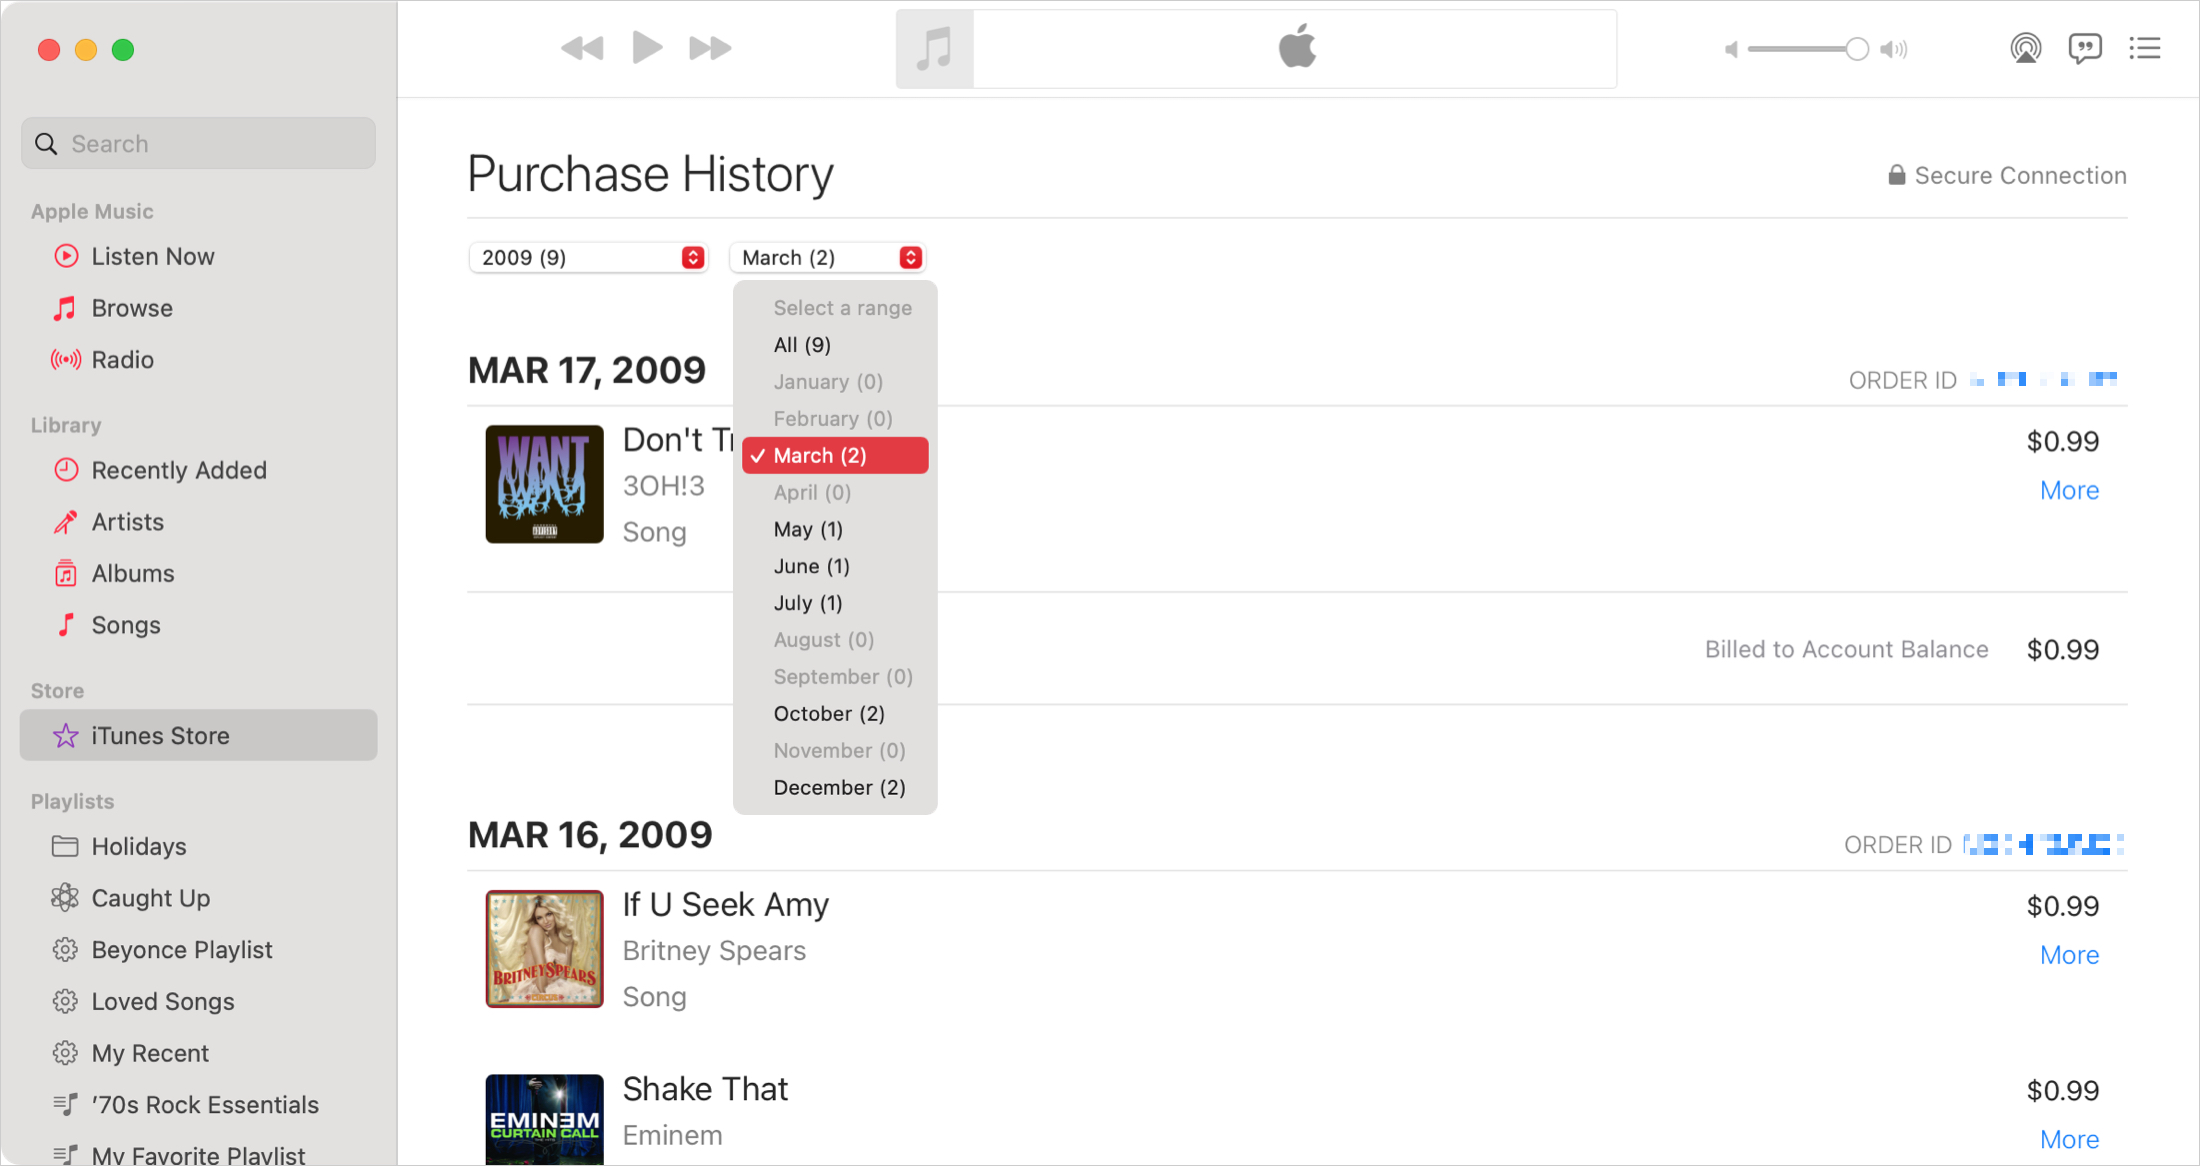 Purchase History with Prices on Mac